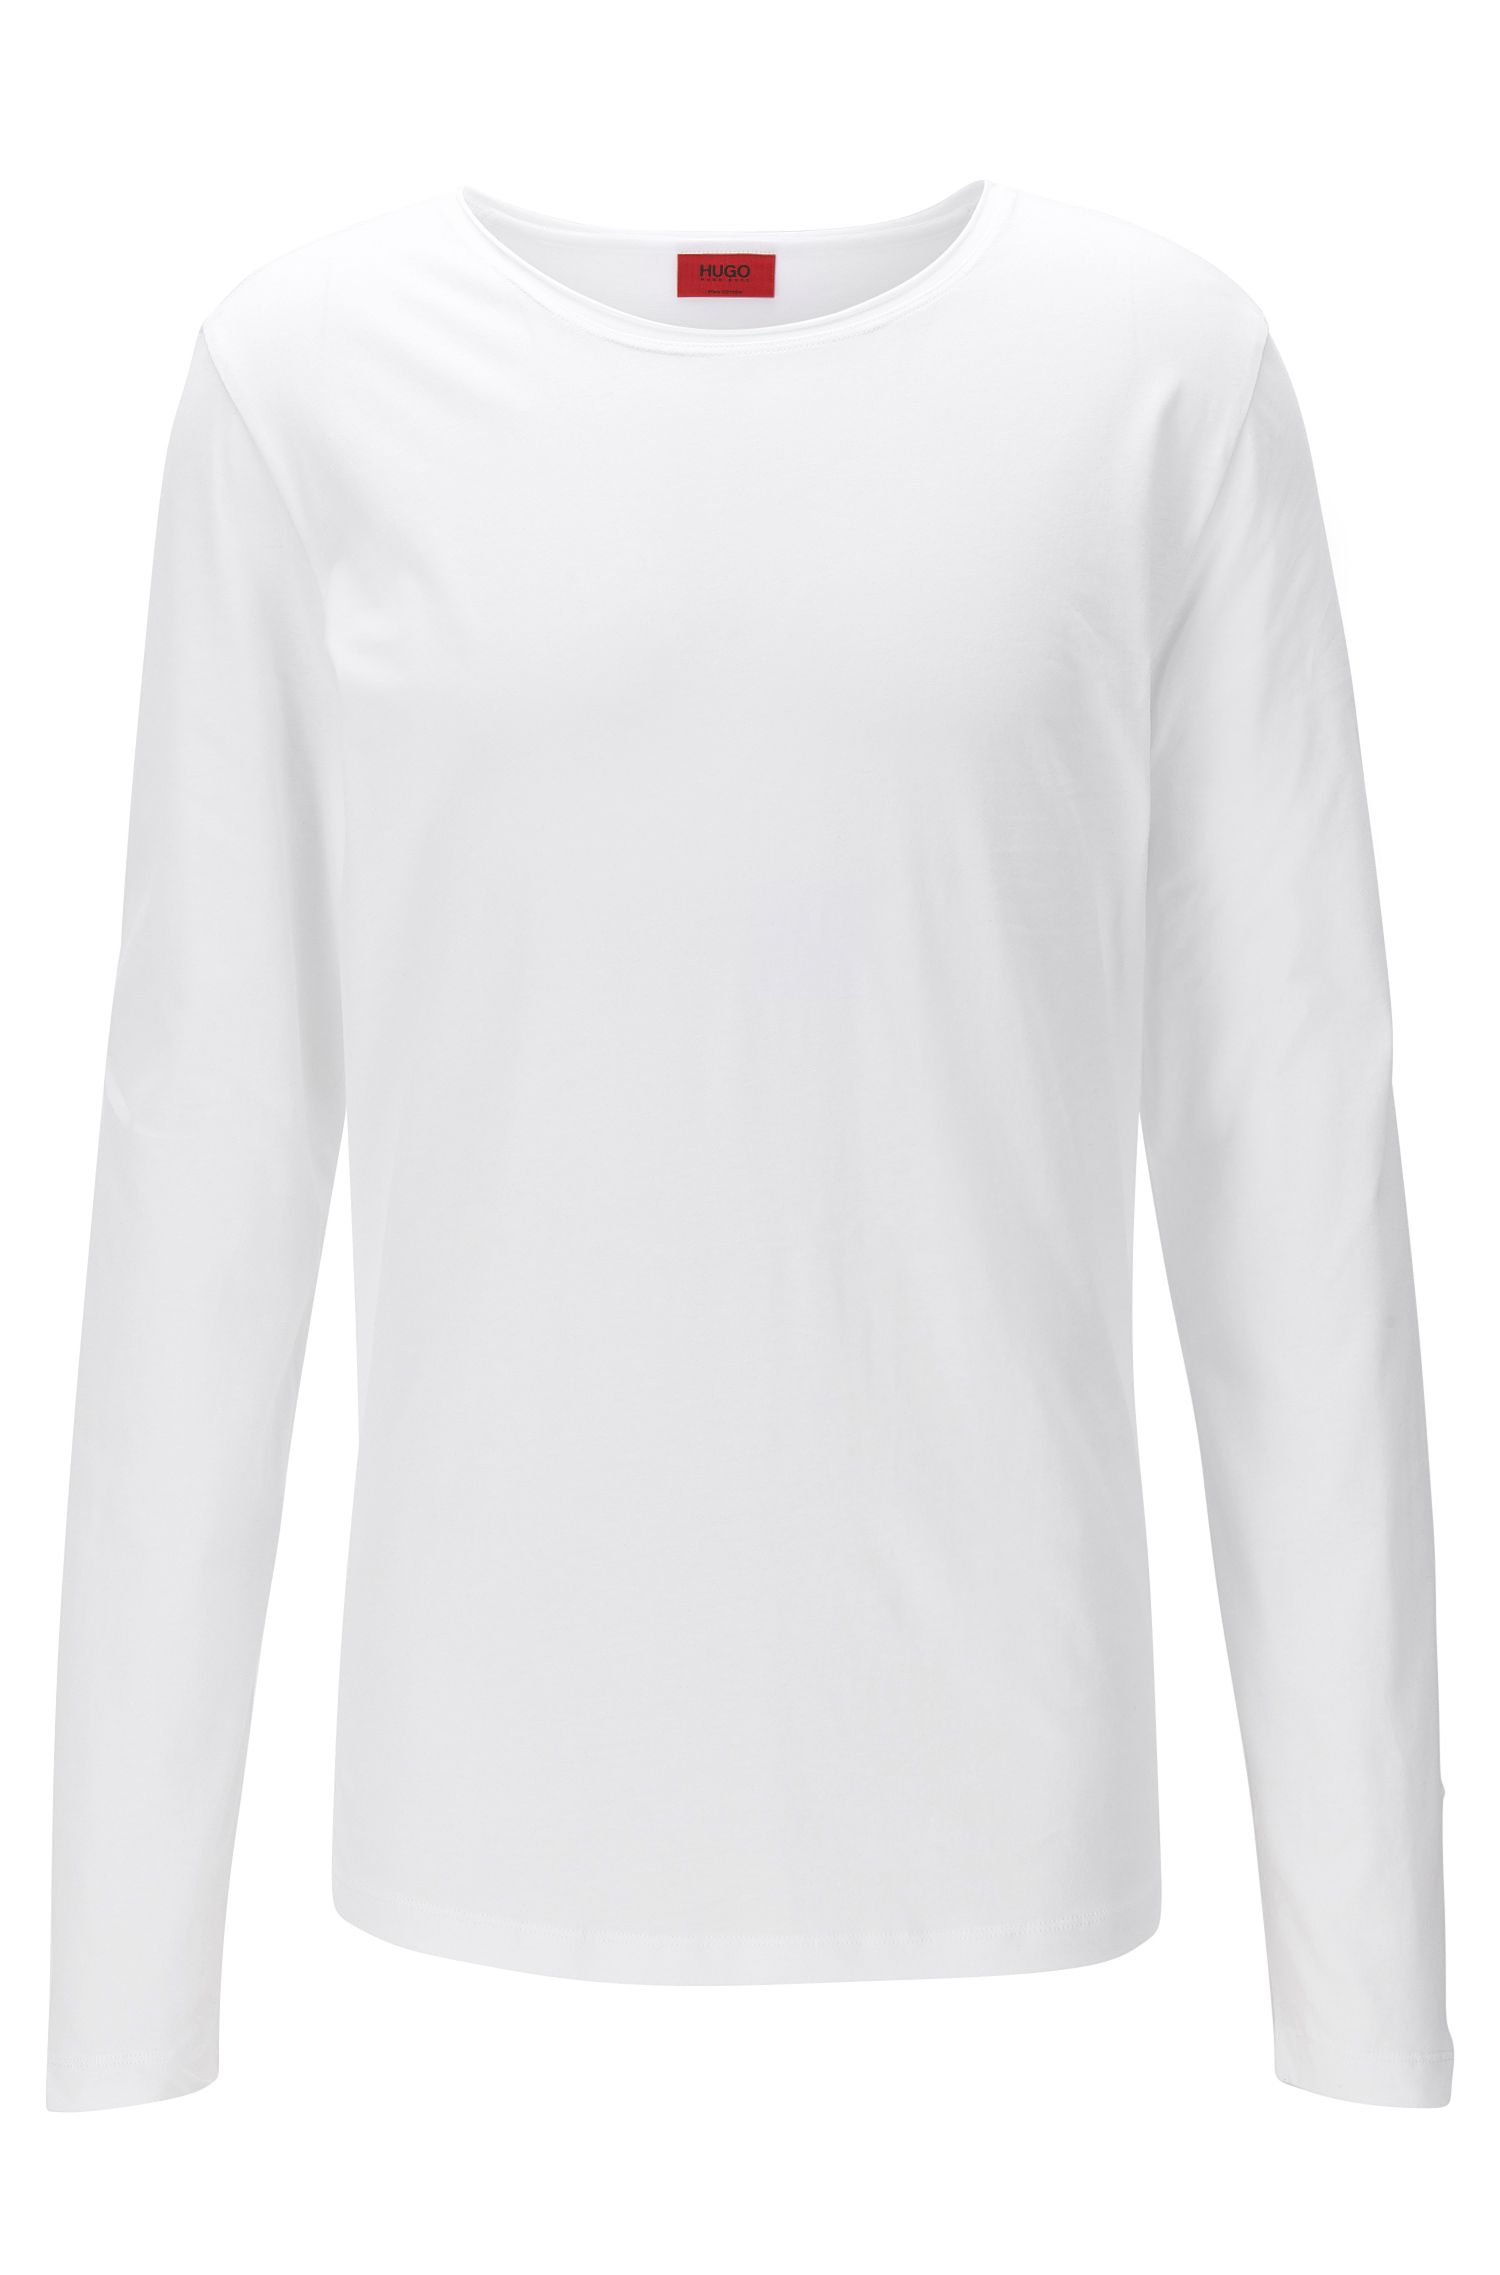 T-shirt Relaxed Fit à manches longues en coton Supima